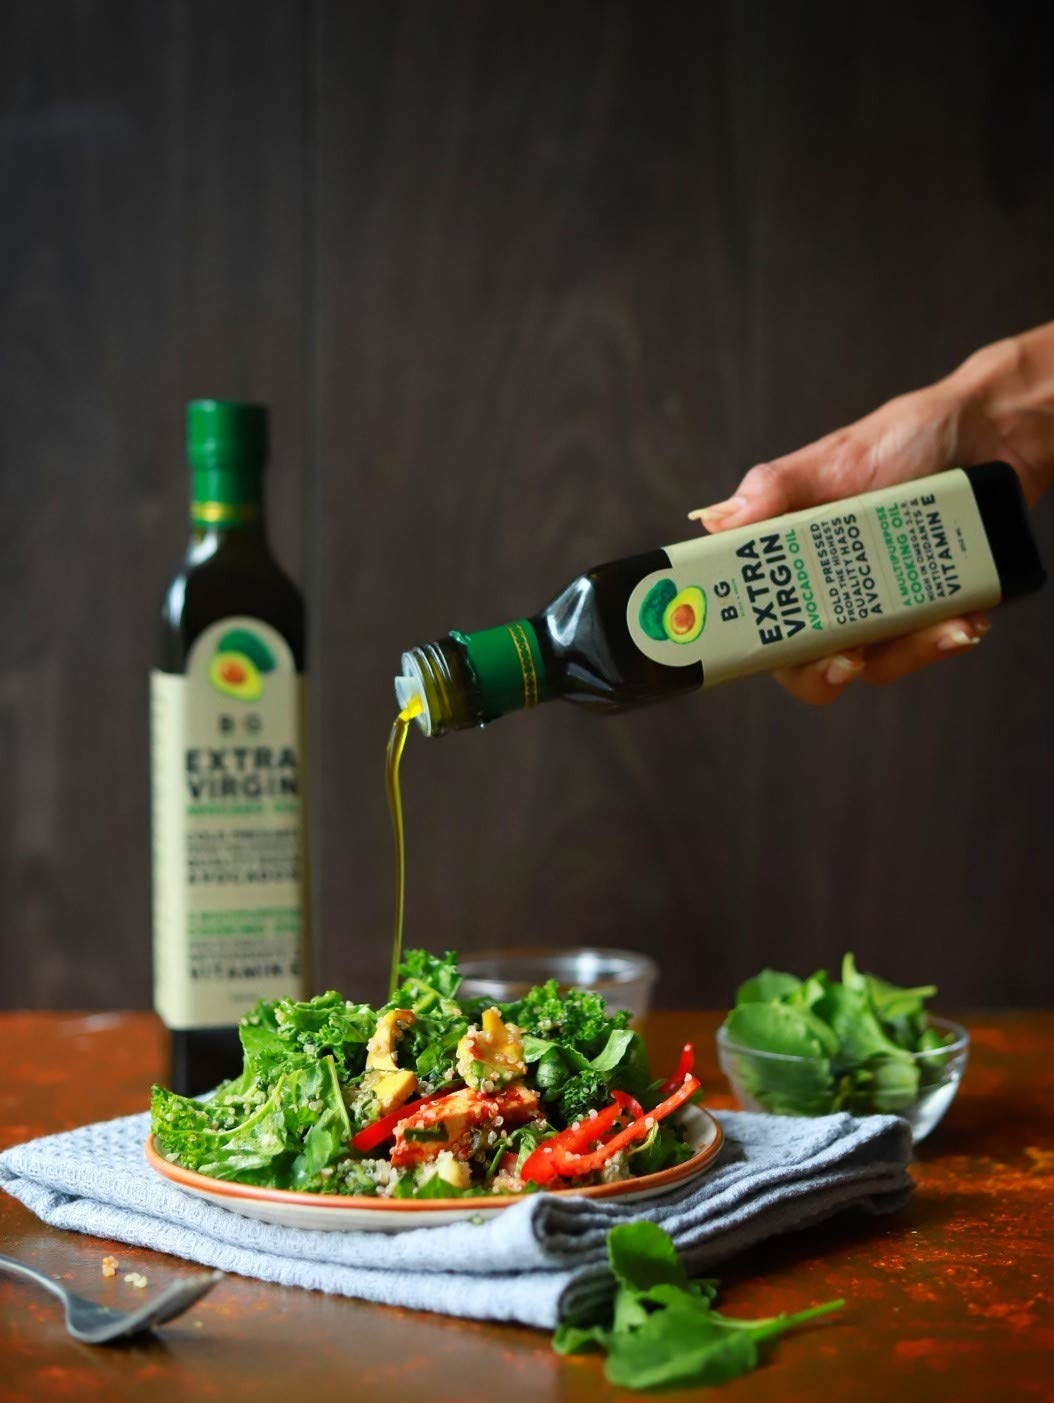 A person drizzling avocado oil on a salad